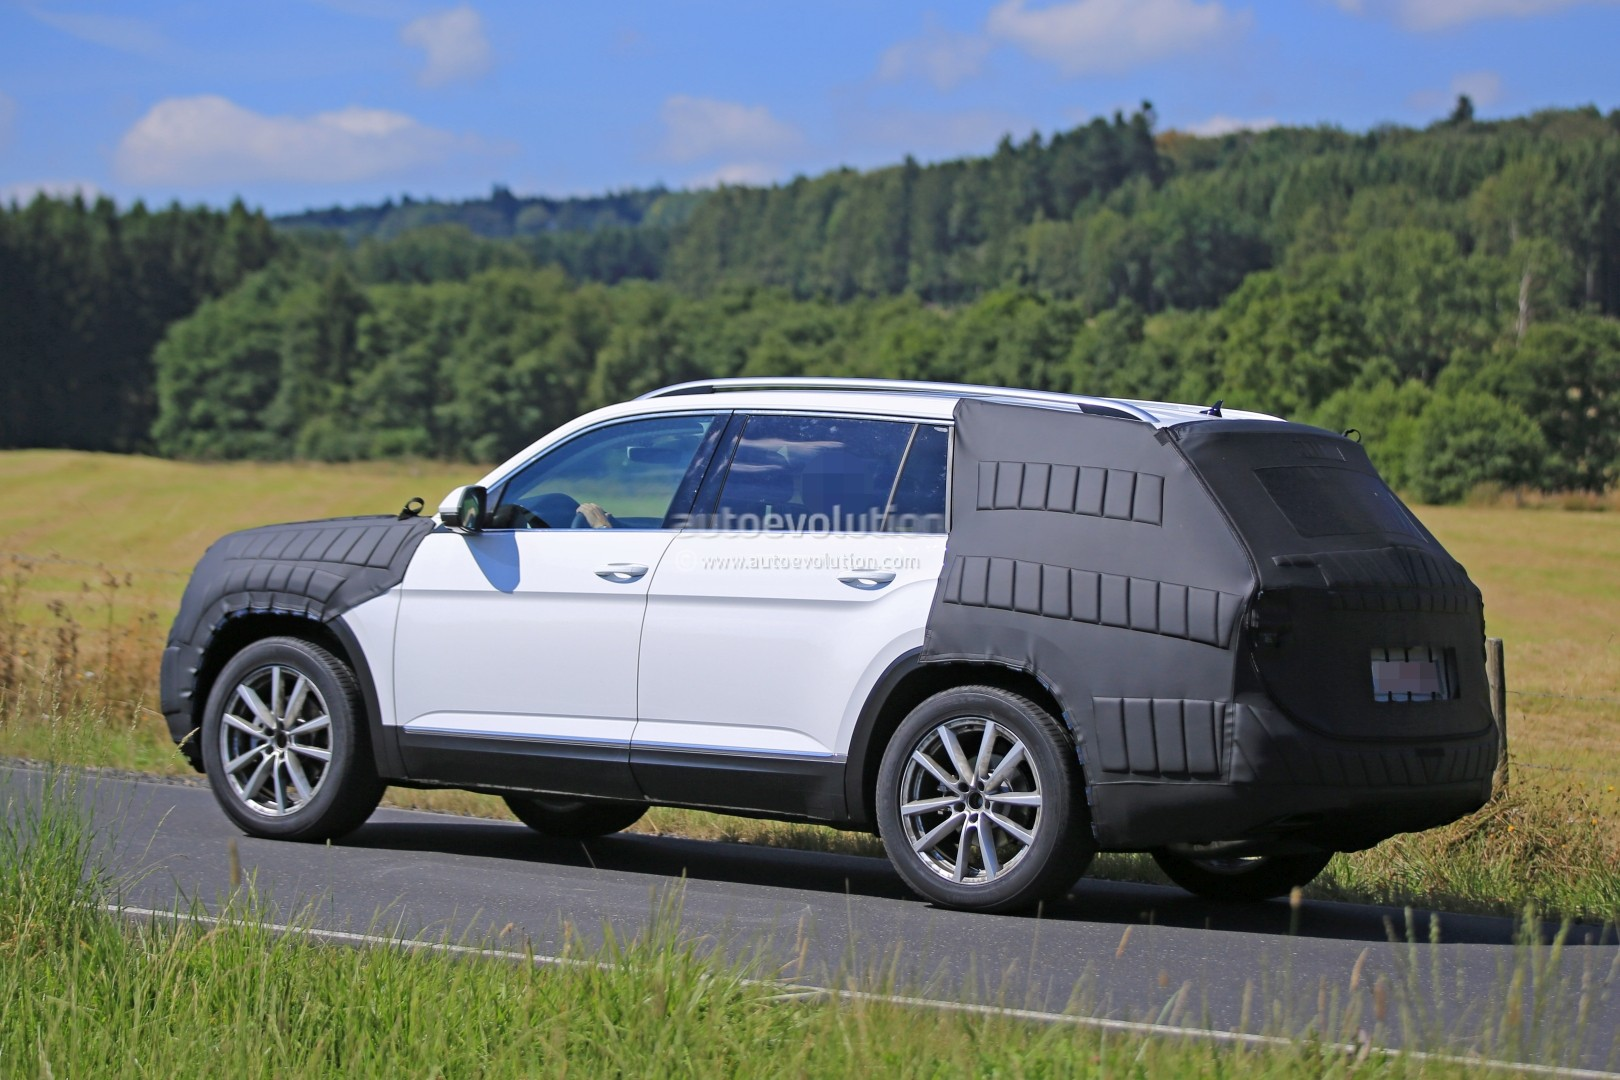 2017 Volkswagen 7-Seater US Market SUV Spied Testing Its Extended Golf ...